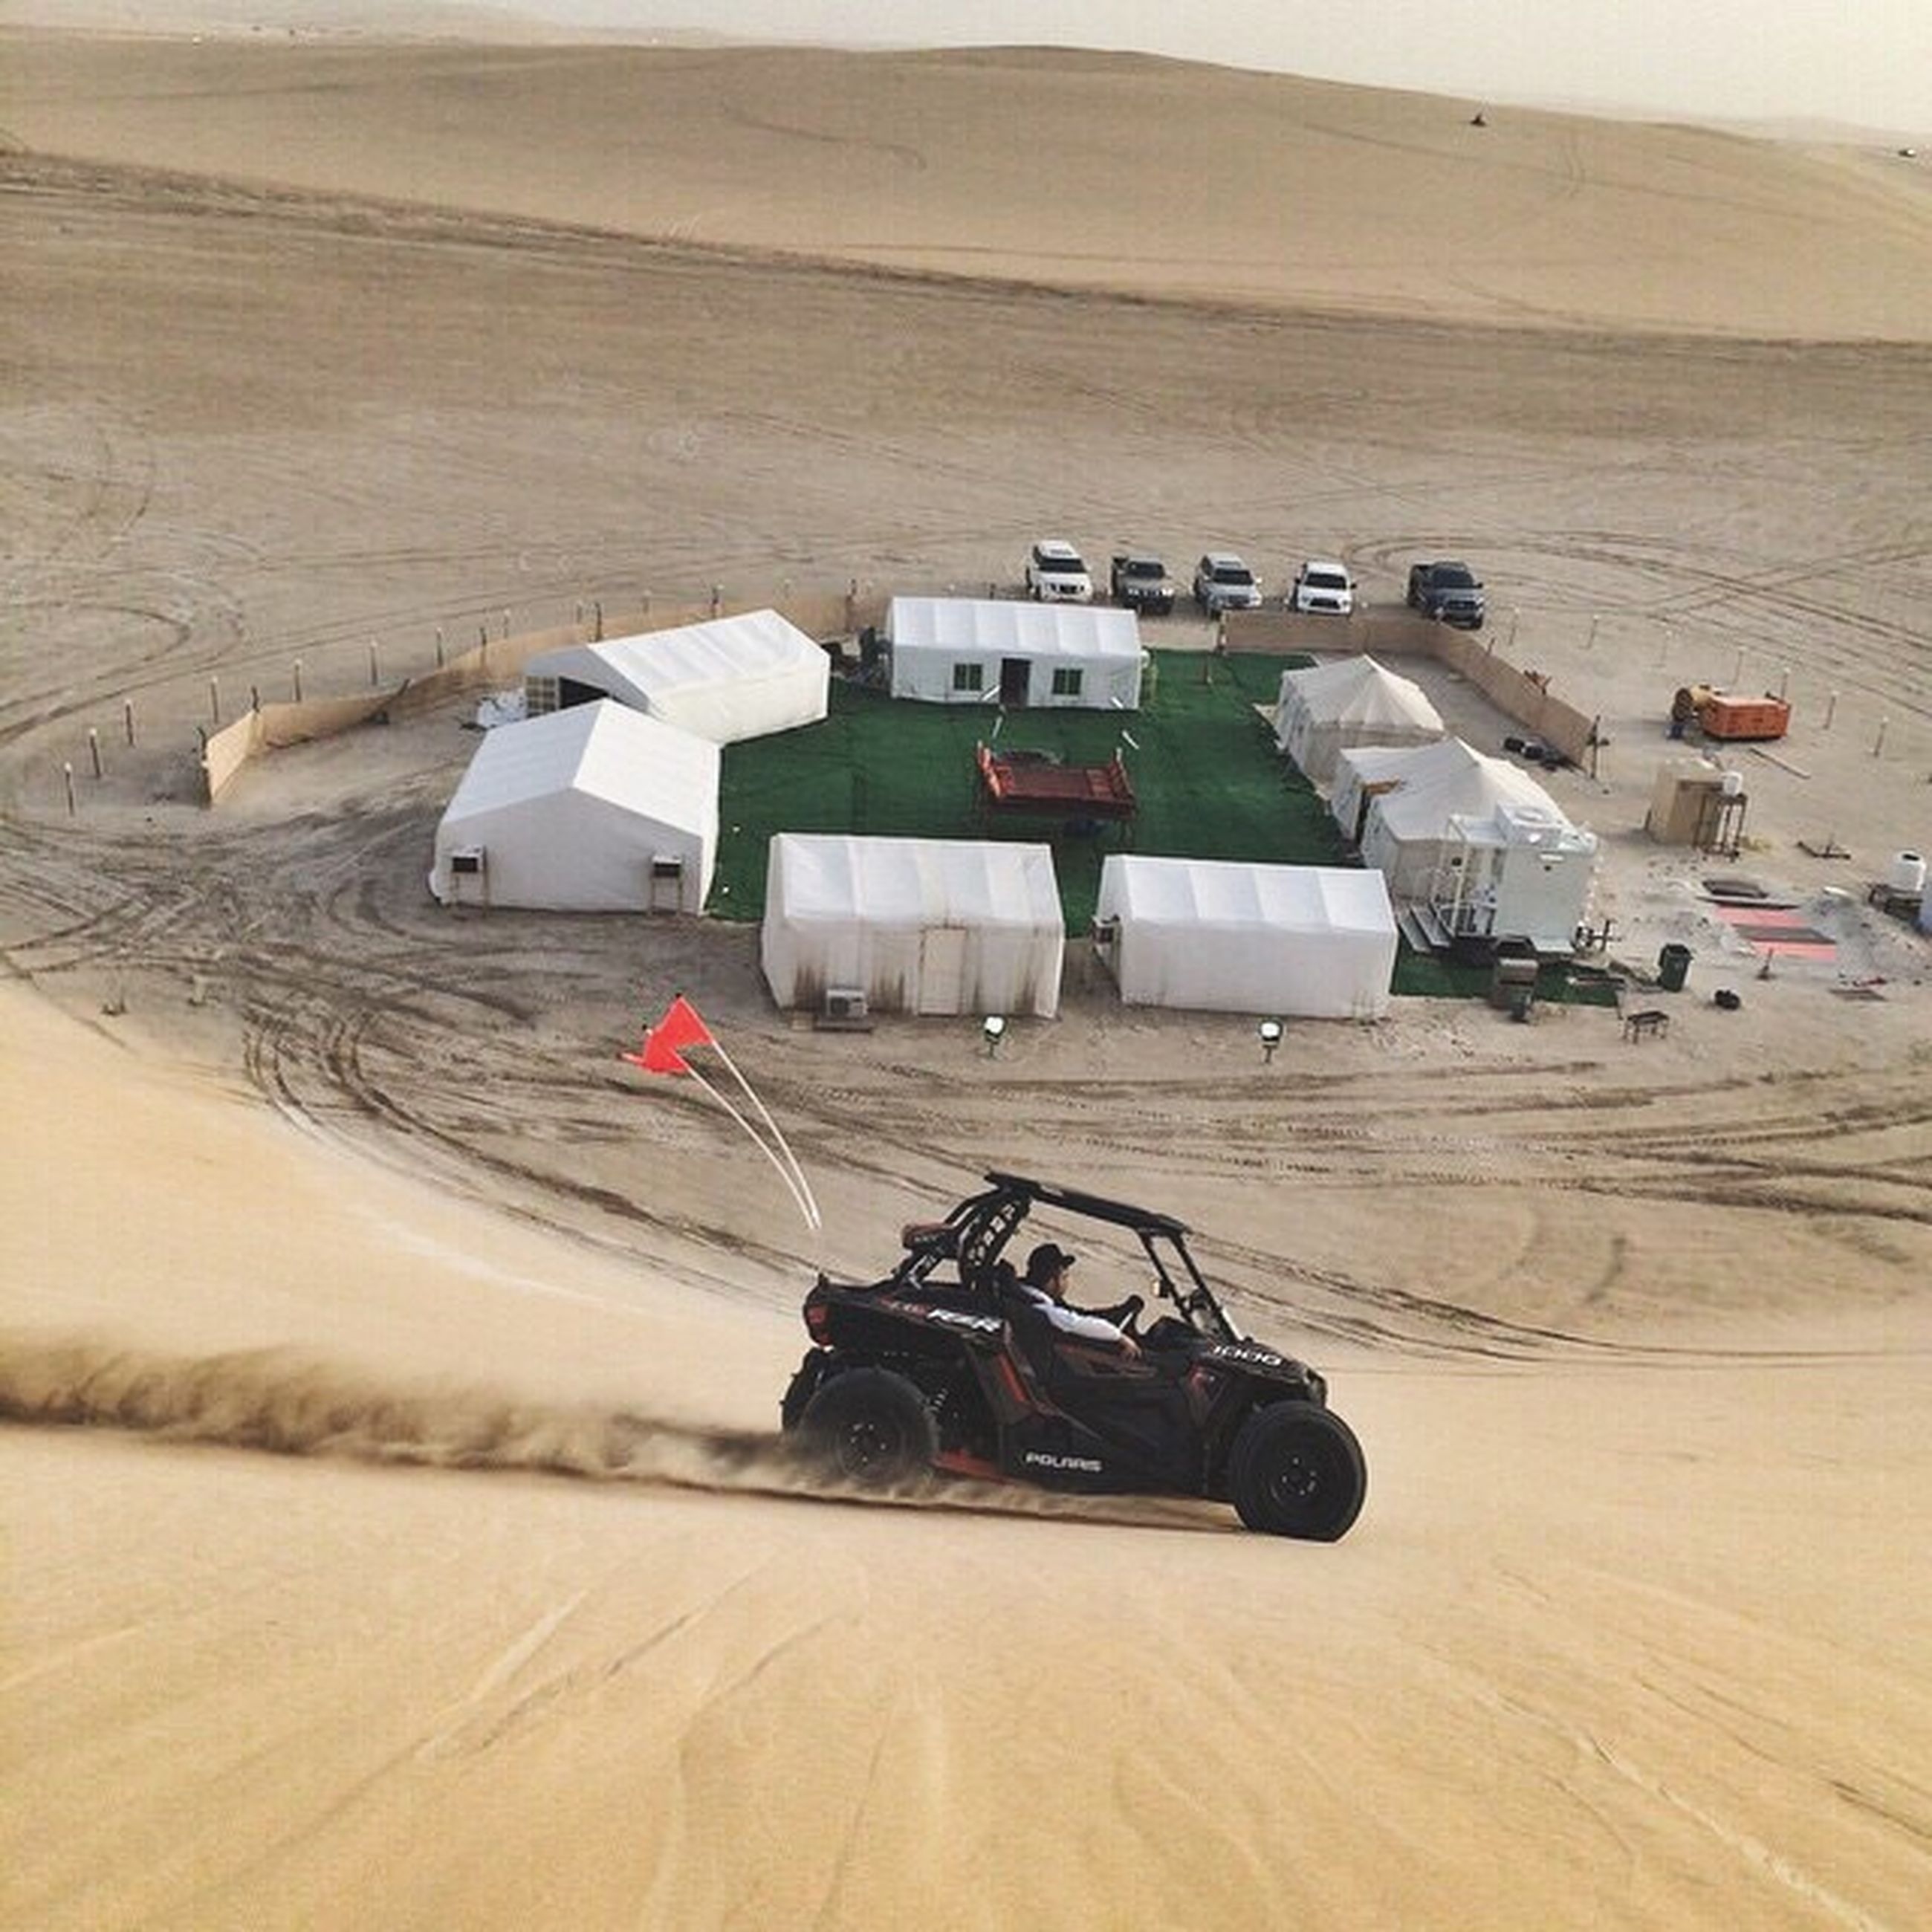 transportation, land vehicle, mode of transport, landscape, car, travel, high angle view, sand, day, desert, field, outdoors, mountain, leisure activity, sunlight, stationary, nature, men